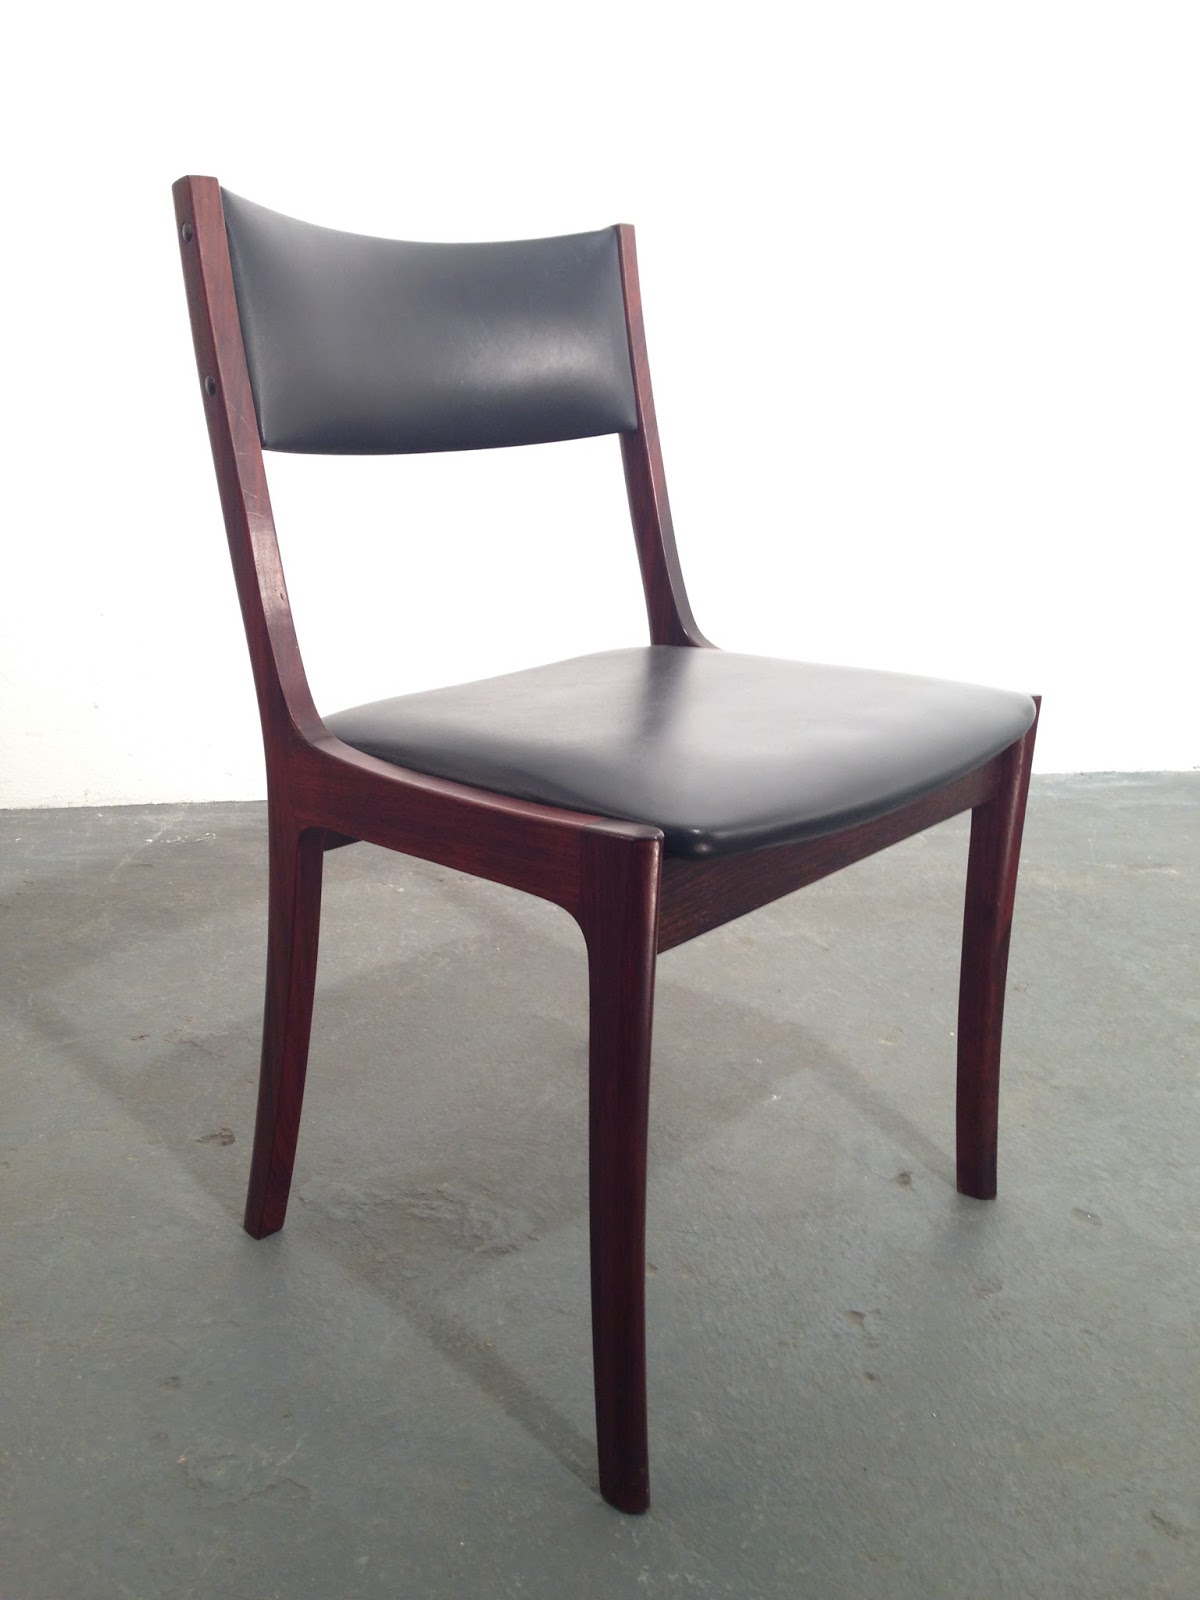 Retro Dining Chairs Ireland Fishing Fighting Chair Vintage Furniture Ocd 1970s Rosewood